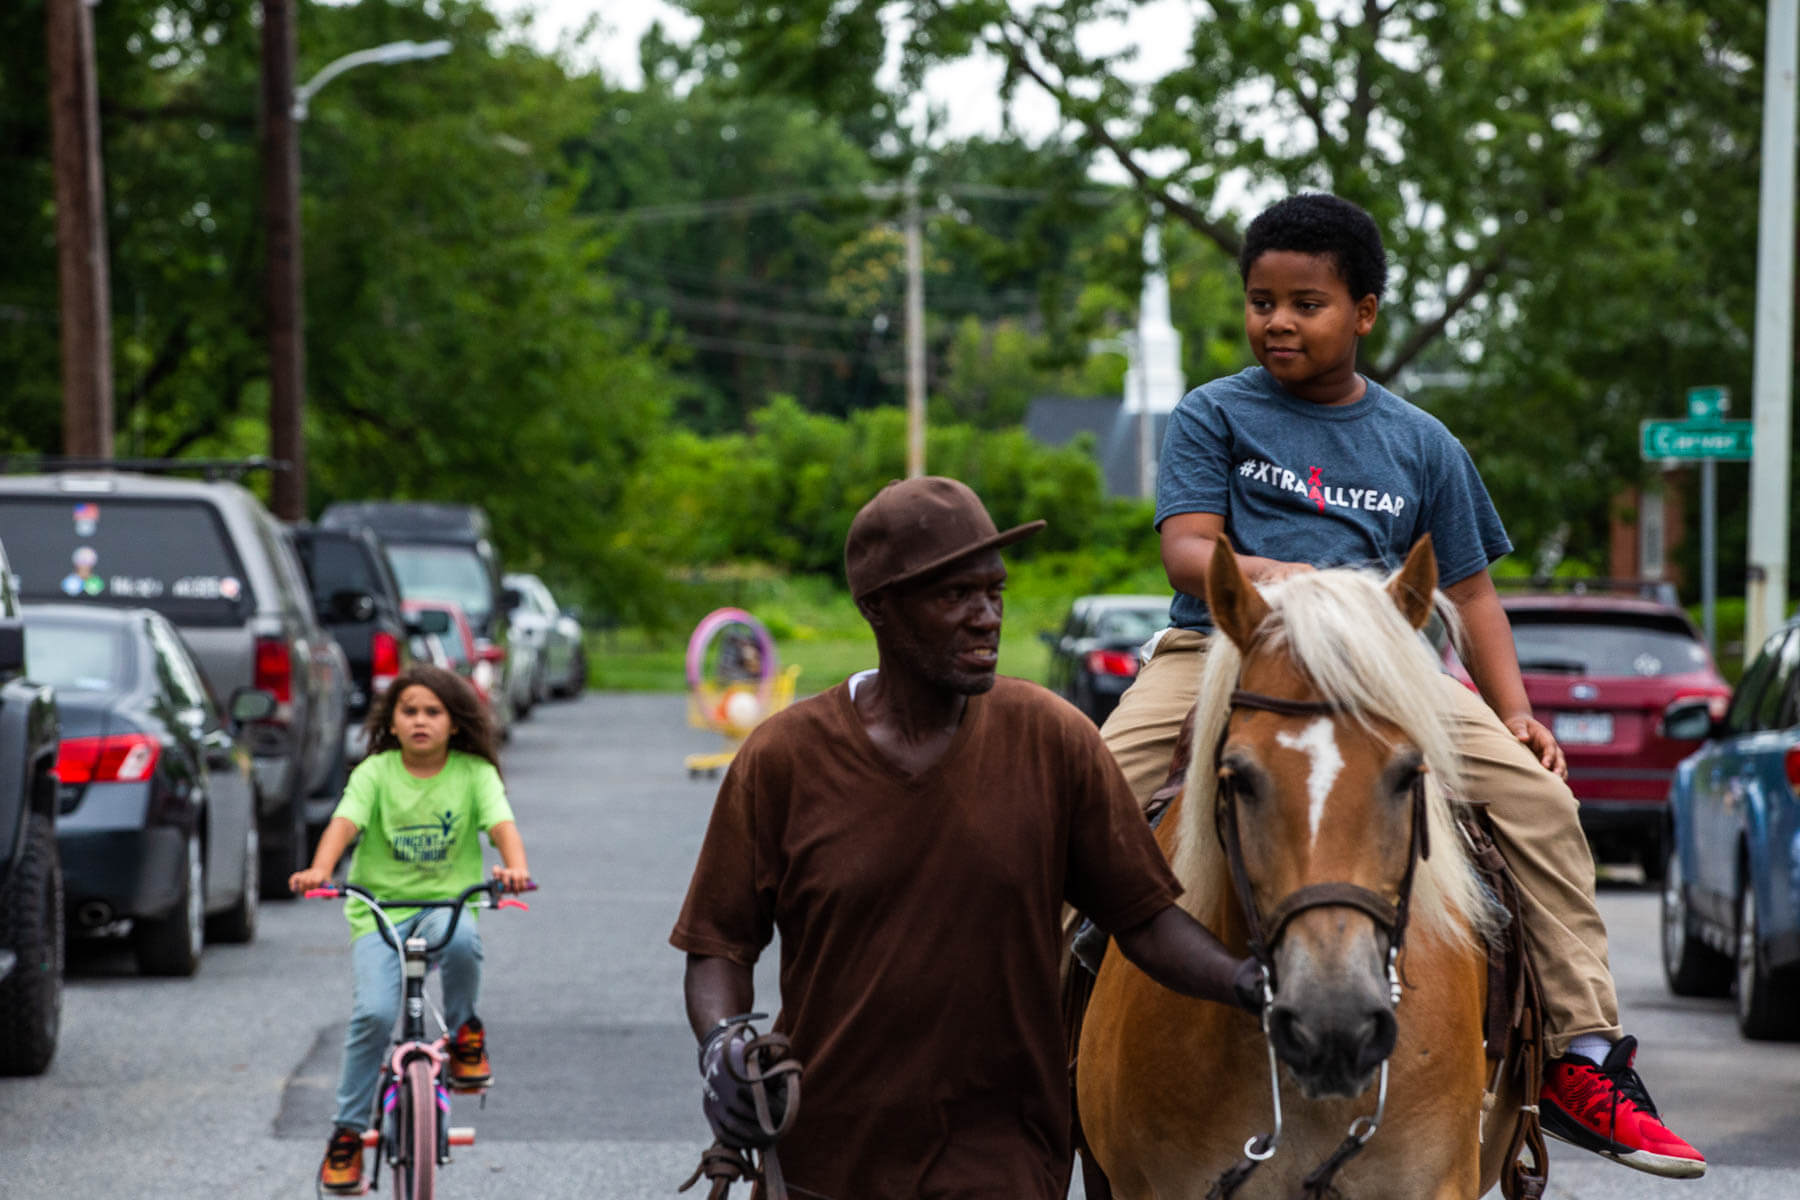 A young boy rides a horse down the street in Turner Station.